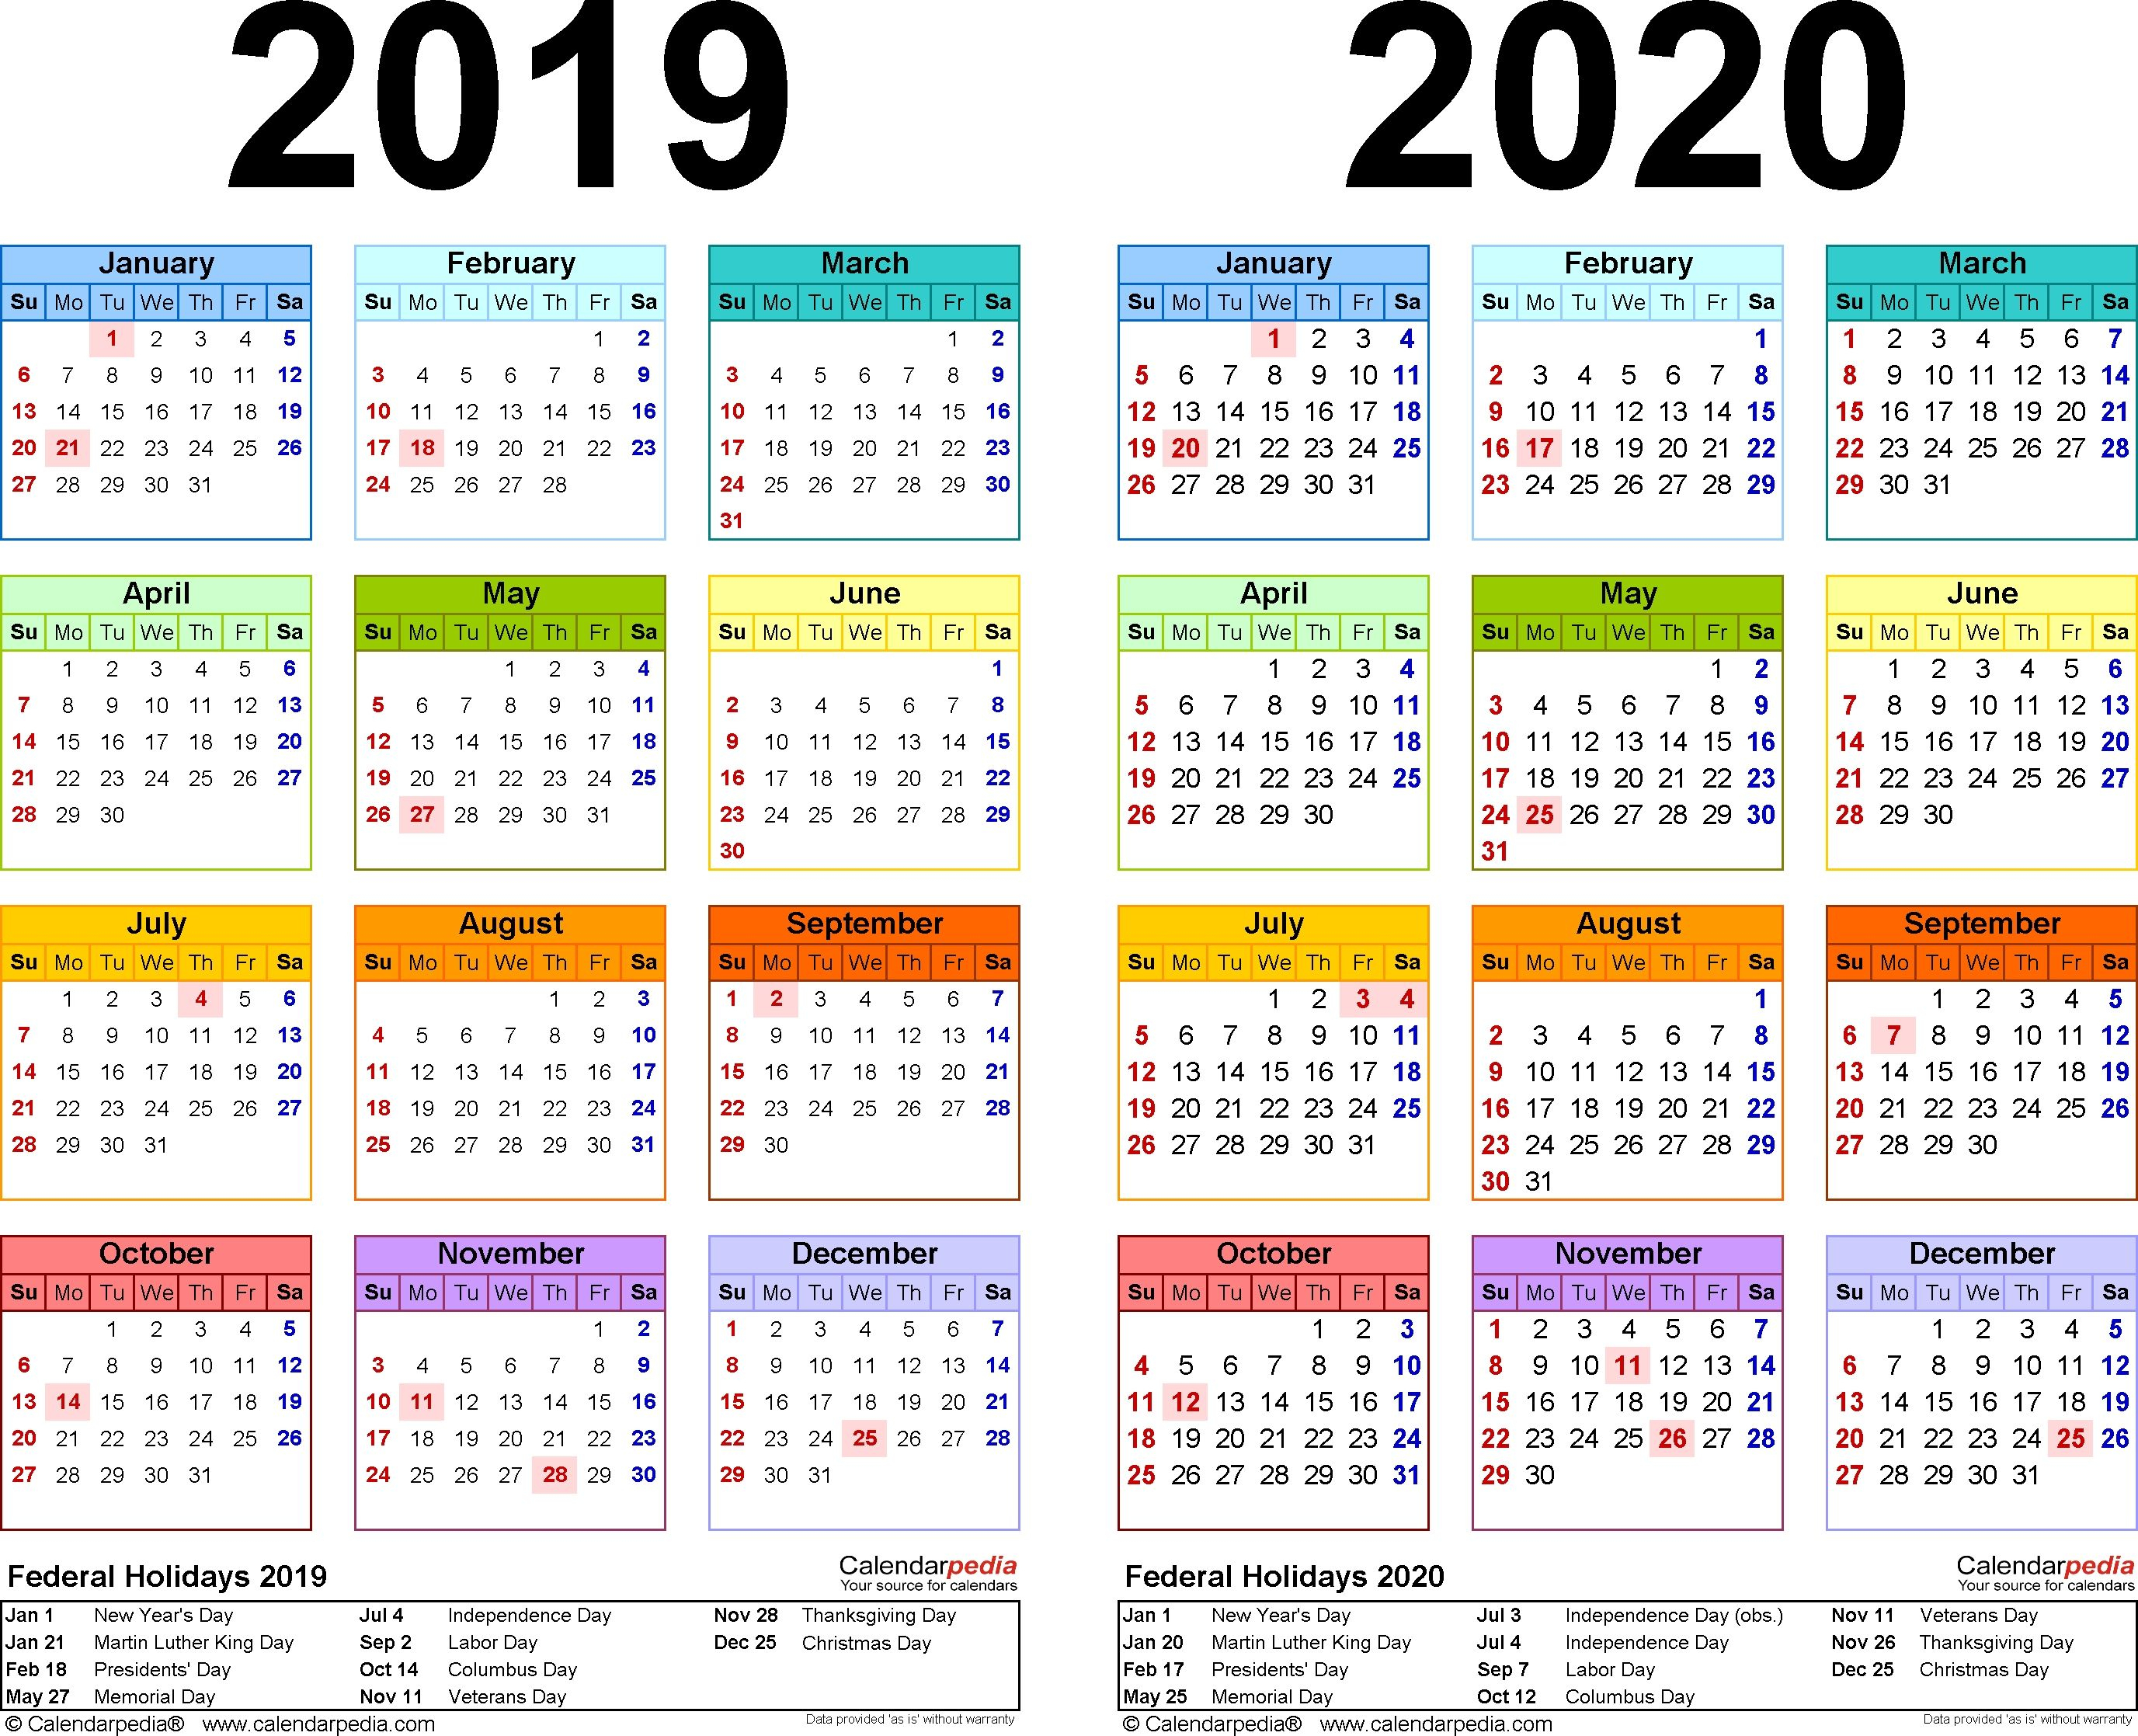 2019-2020 Calendar - Free Printable Two-Year Excel Calendars 2020 throughout Printable 8.5 X 11 2020 Calendar